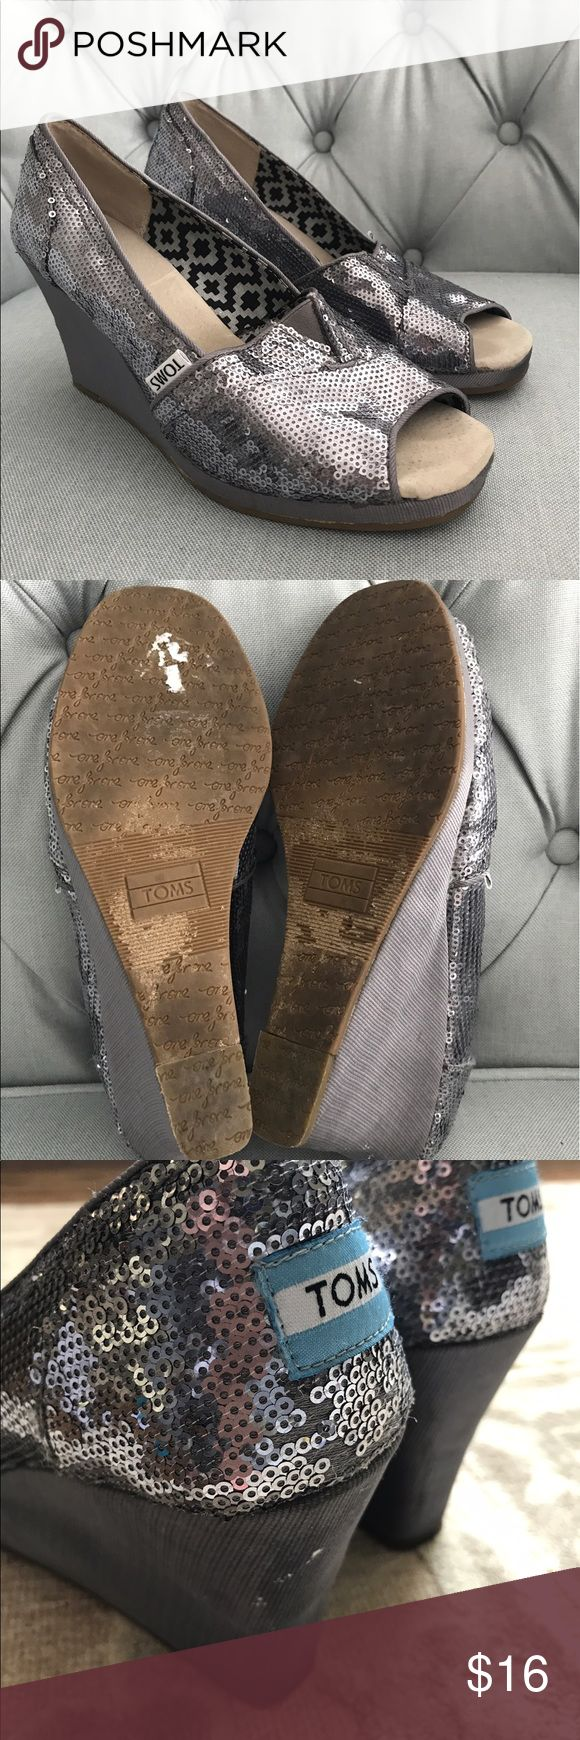 Toms silver gray sequin stacked wedge shoe TOMS silver sequin sparkly peep toe wedges. Please note there are visible markings on back of both heels (see pics). Markings from wear/use. However interior soles clean , bottom soles in good condition. Very sparkly!! 3 1/4 inch heel. Toms Shoes Wedges